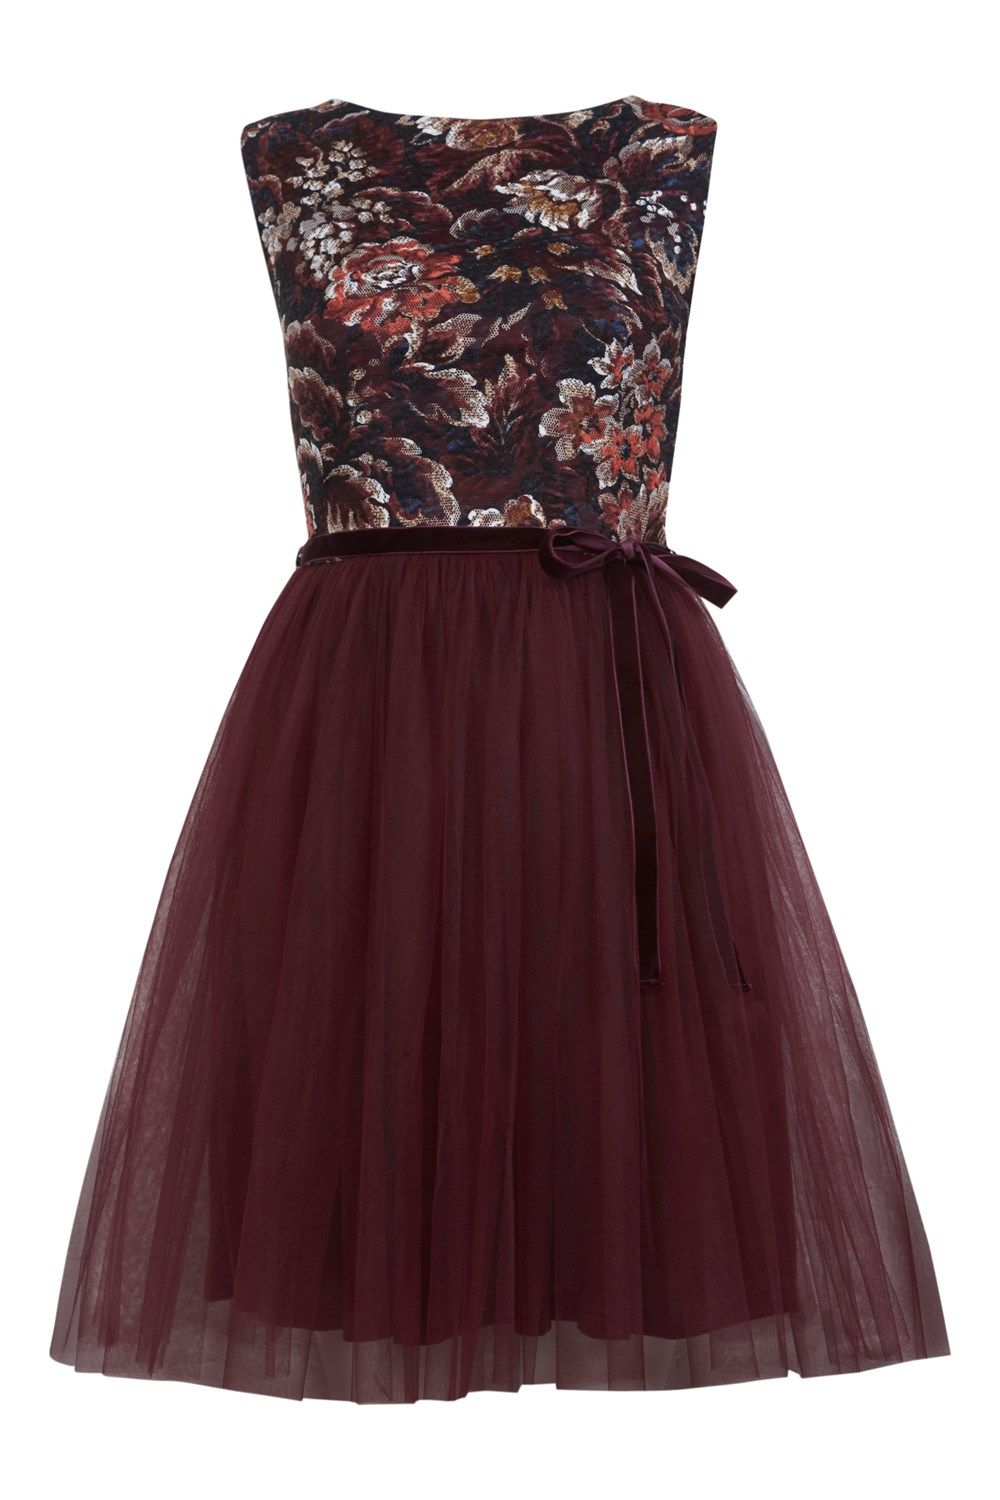 e11c15a1ec dresses - Floral Tutu Dress - Smith   Caughey s